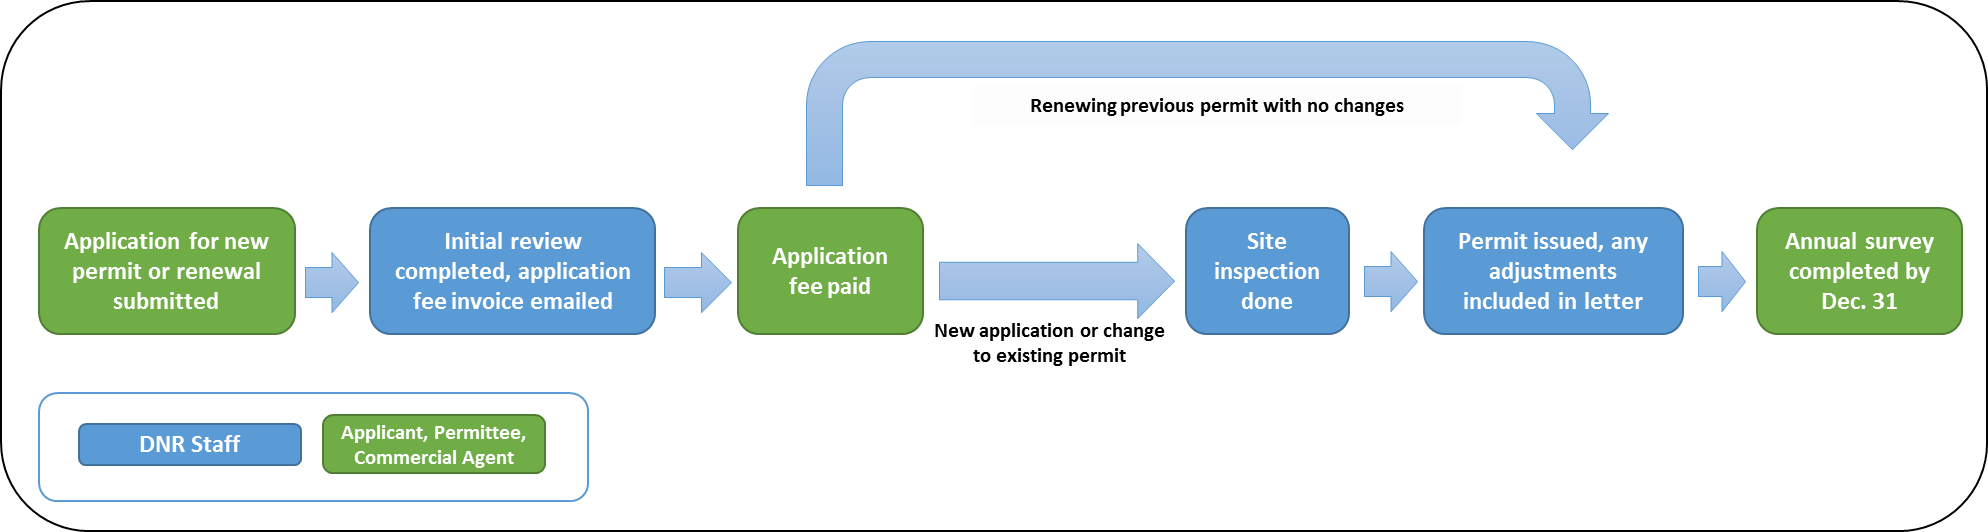 Diagram depicting the APM permit approval process.